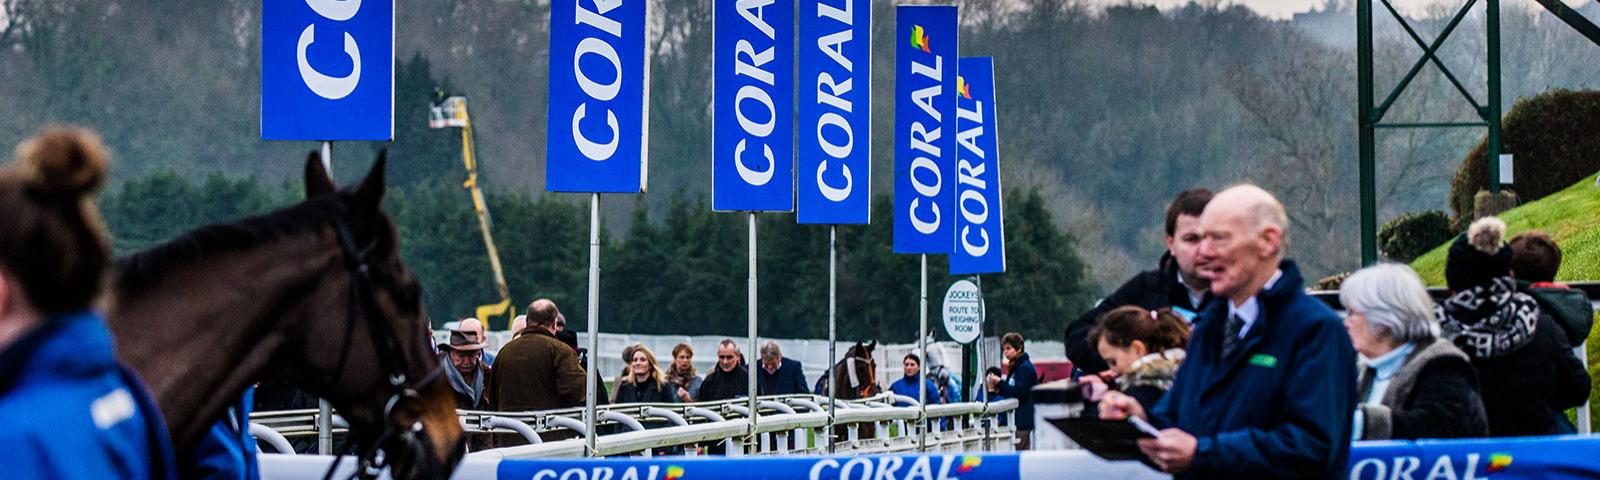 A Chepstow Racecourse sponsor's (Coral) flag is highly visible around the parade ring.